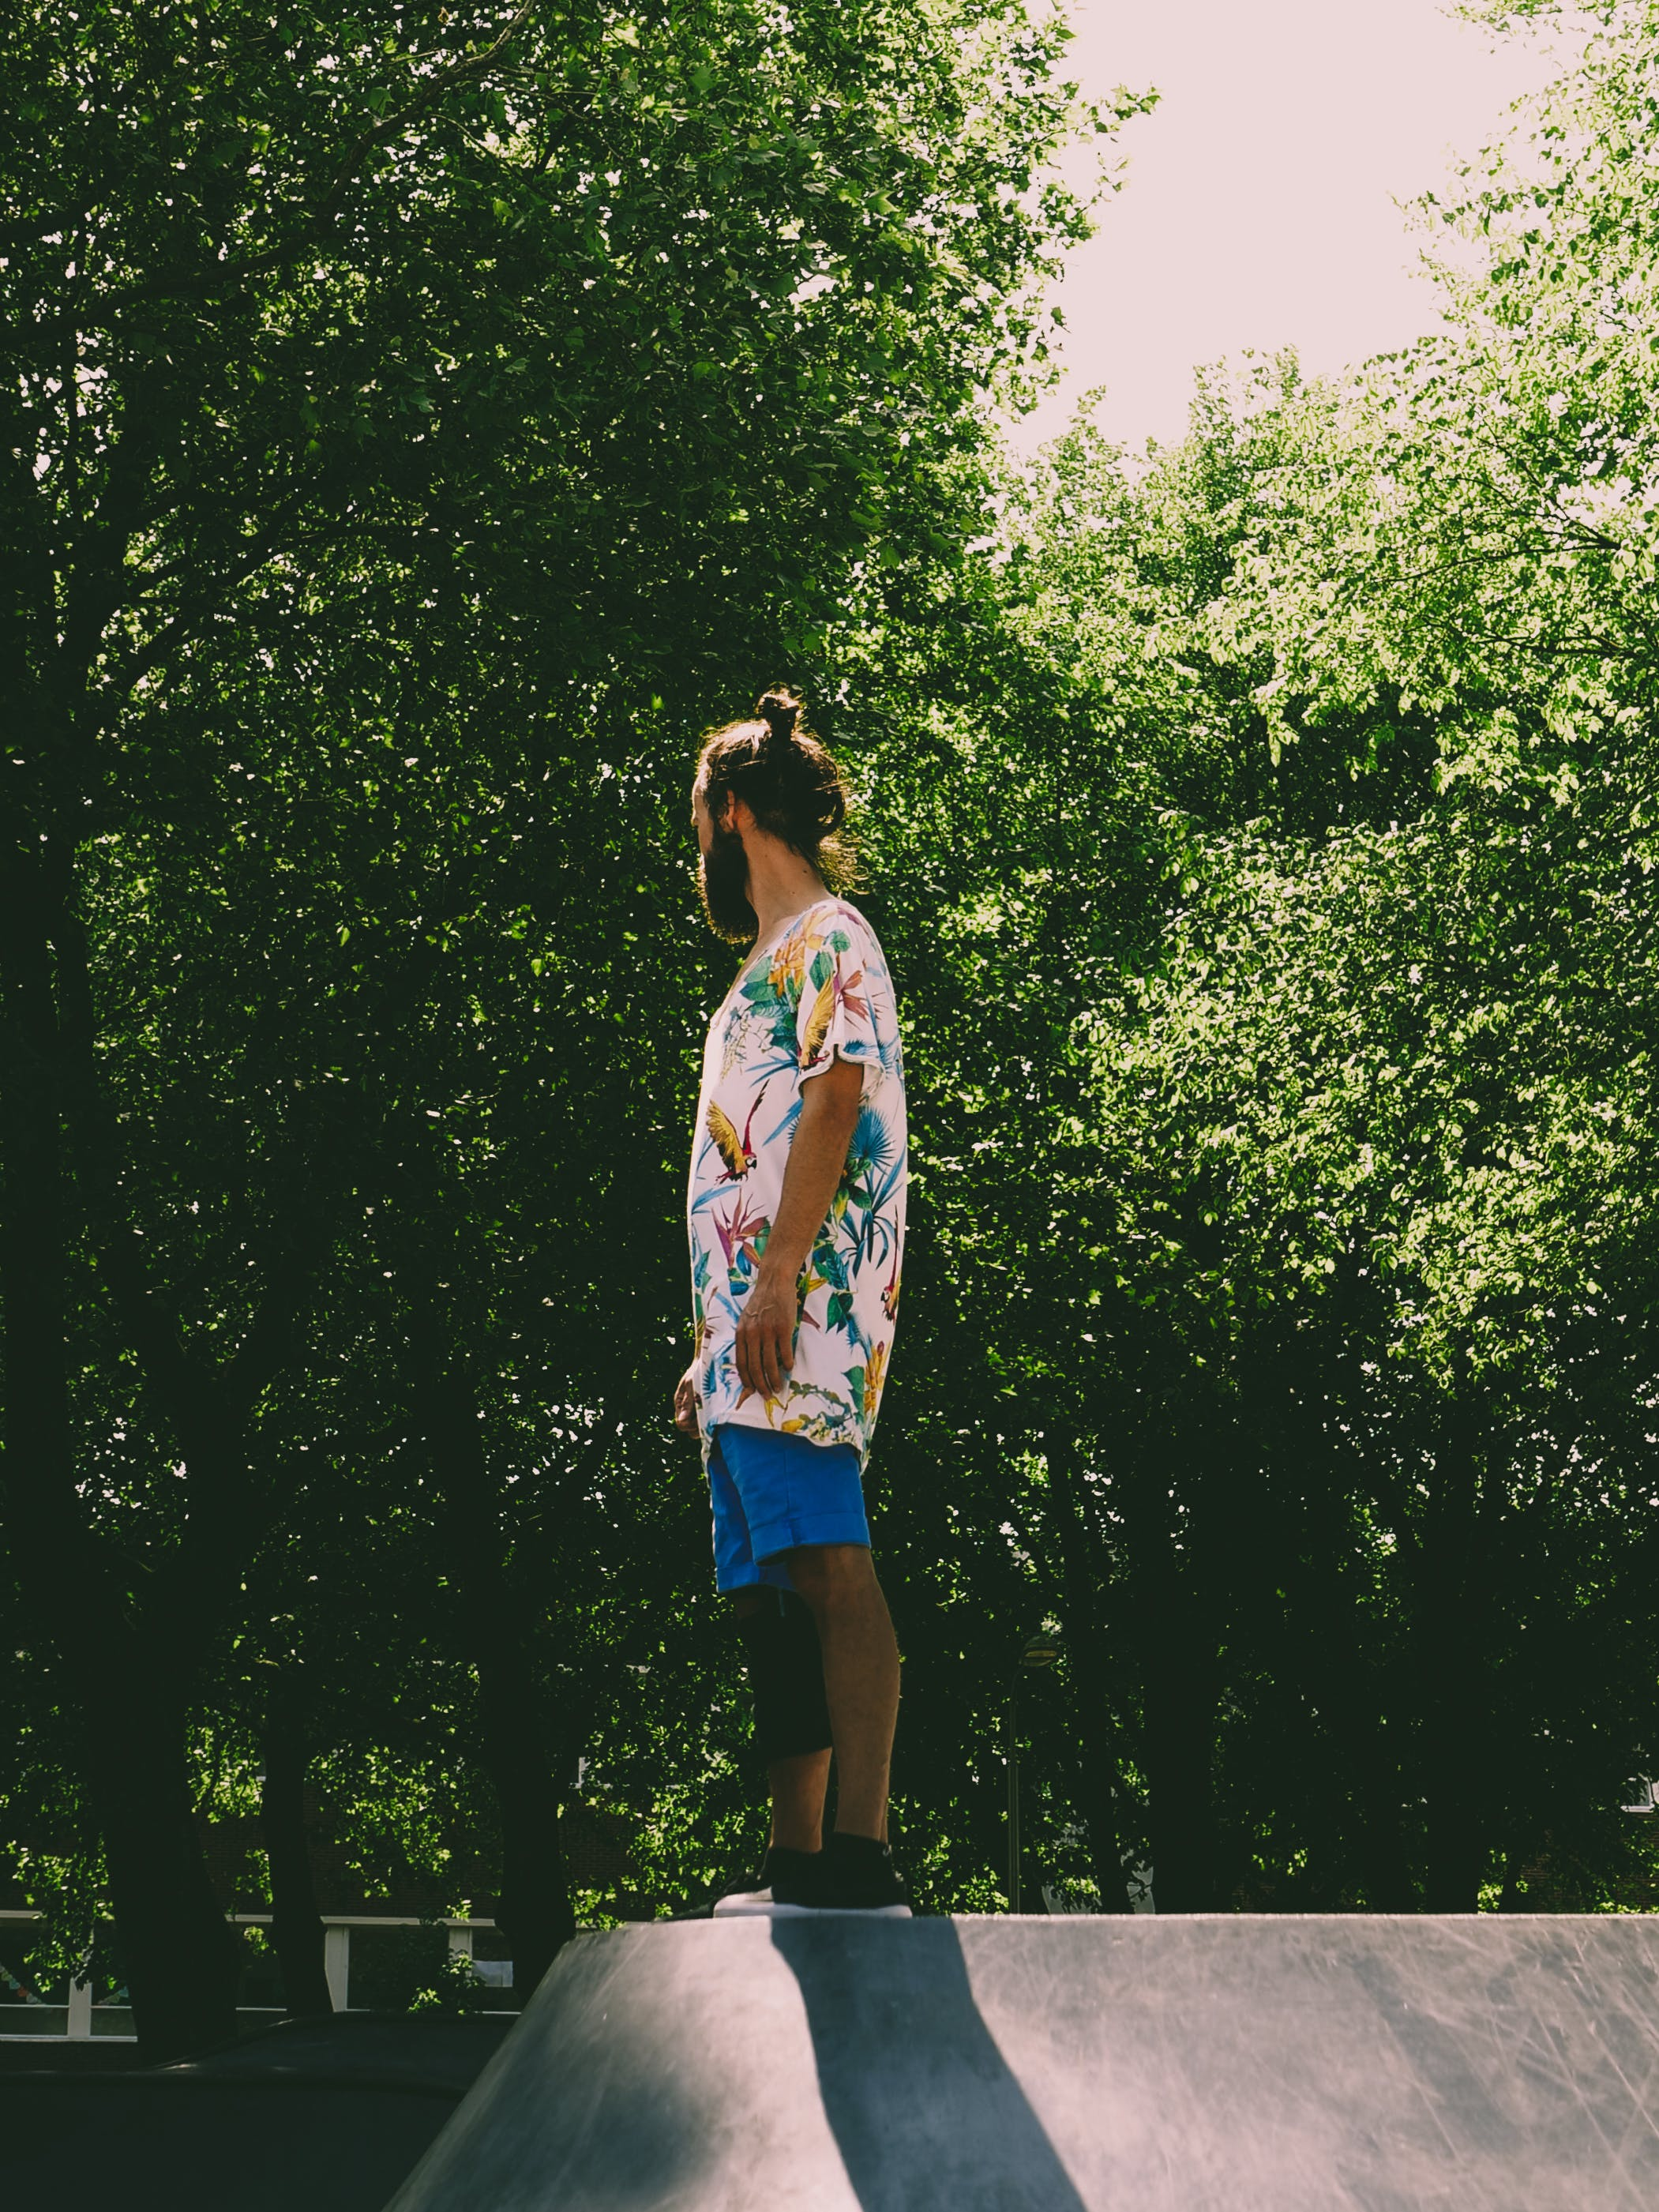 Man Wearing White and Multicolored Floral Standing Near Trees